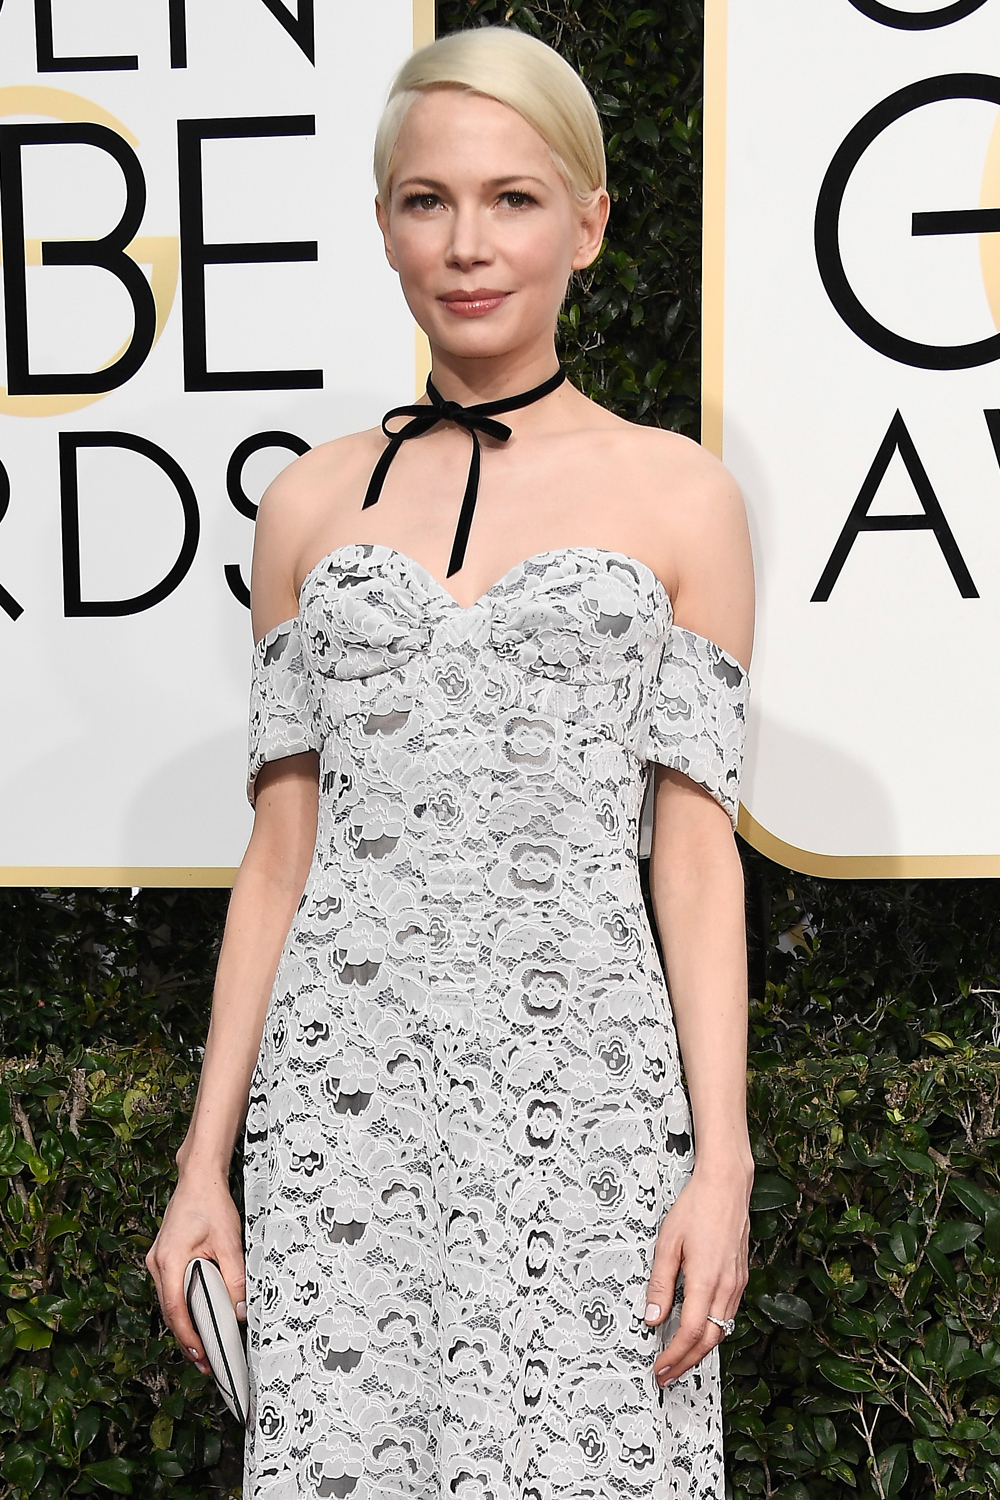 michelle-williams-manchester-by-the-sea-2017-golden-globe-awards-red-carpet-fashion-louis-vuitton-tom-lorenzo-site-1